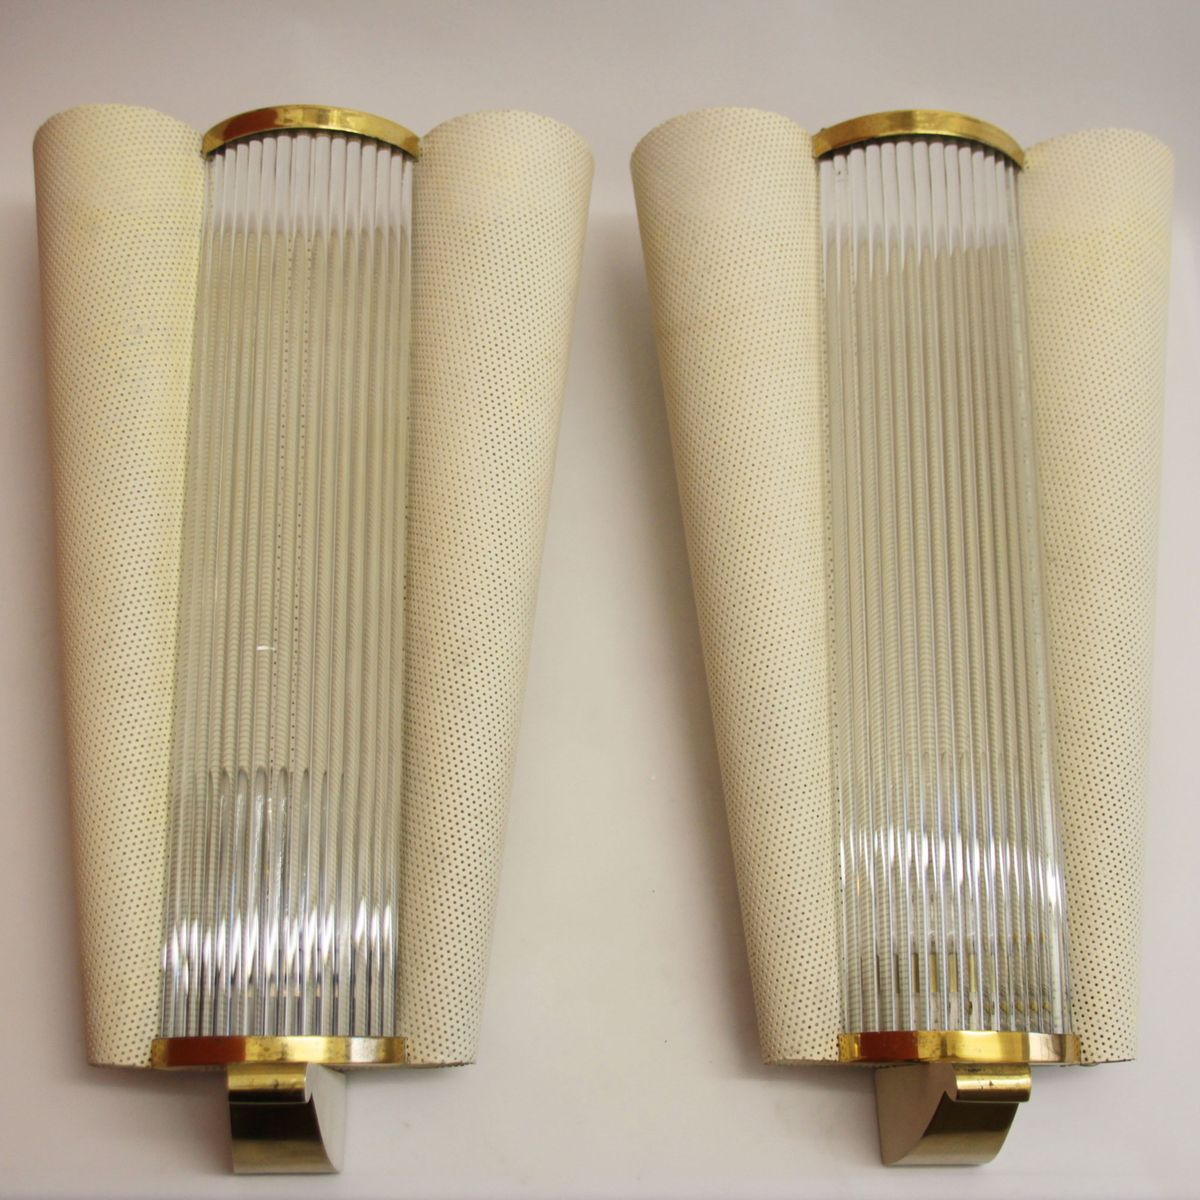 French mid century wall sconces with glass rods from petitot 1950s set of 2